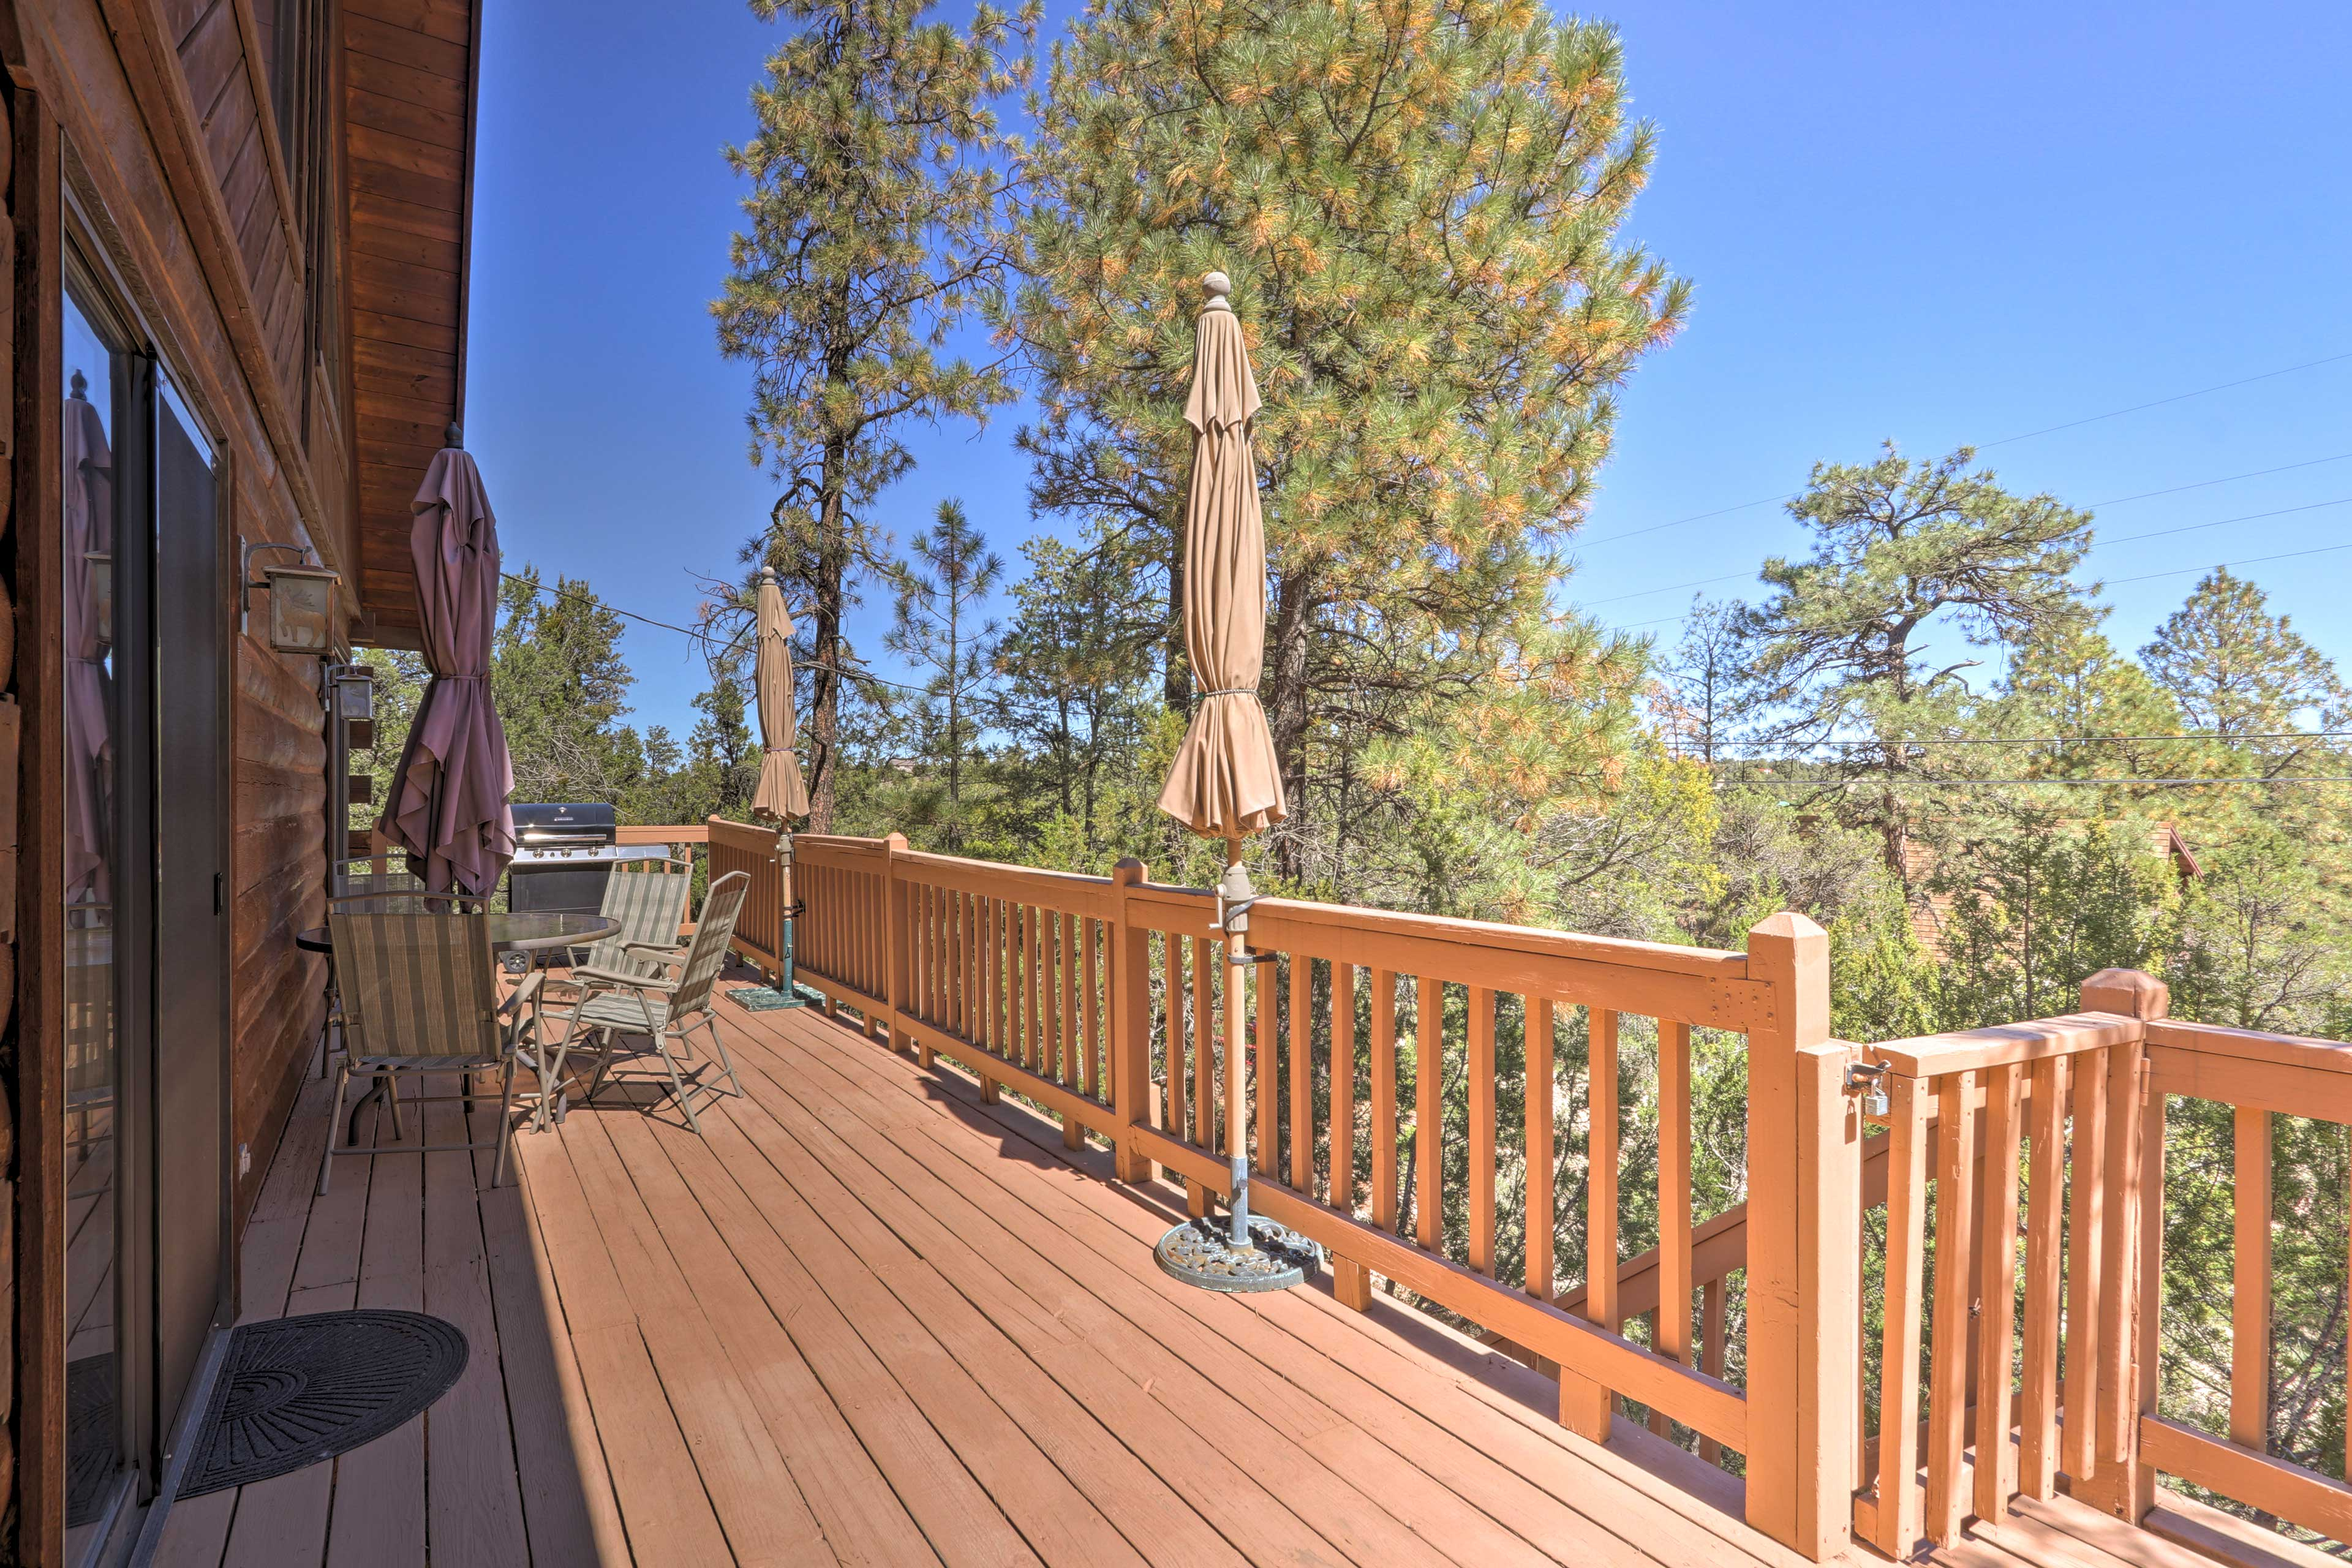 Step out onto the deck and get some Vitamin D.